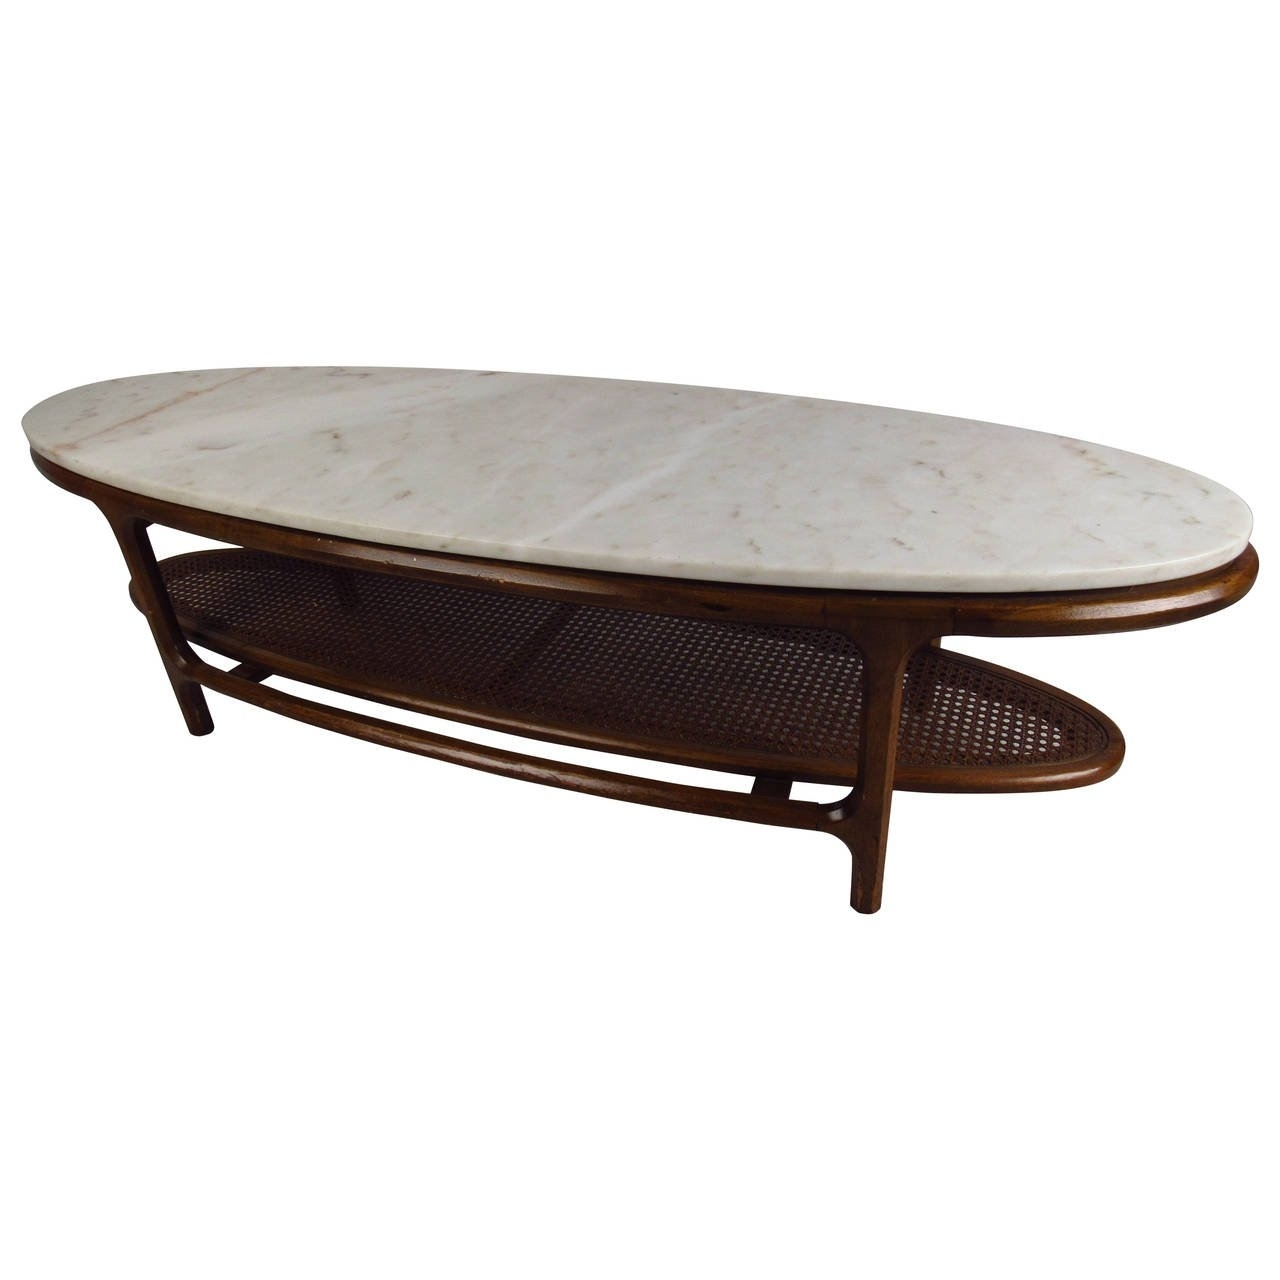 Mid-Century Modern Marble-Top Coffee Table With Cane Shelf For Sale intended for Mid-Century Modern Marble Coffee Tables (Image 24 of 30)